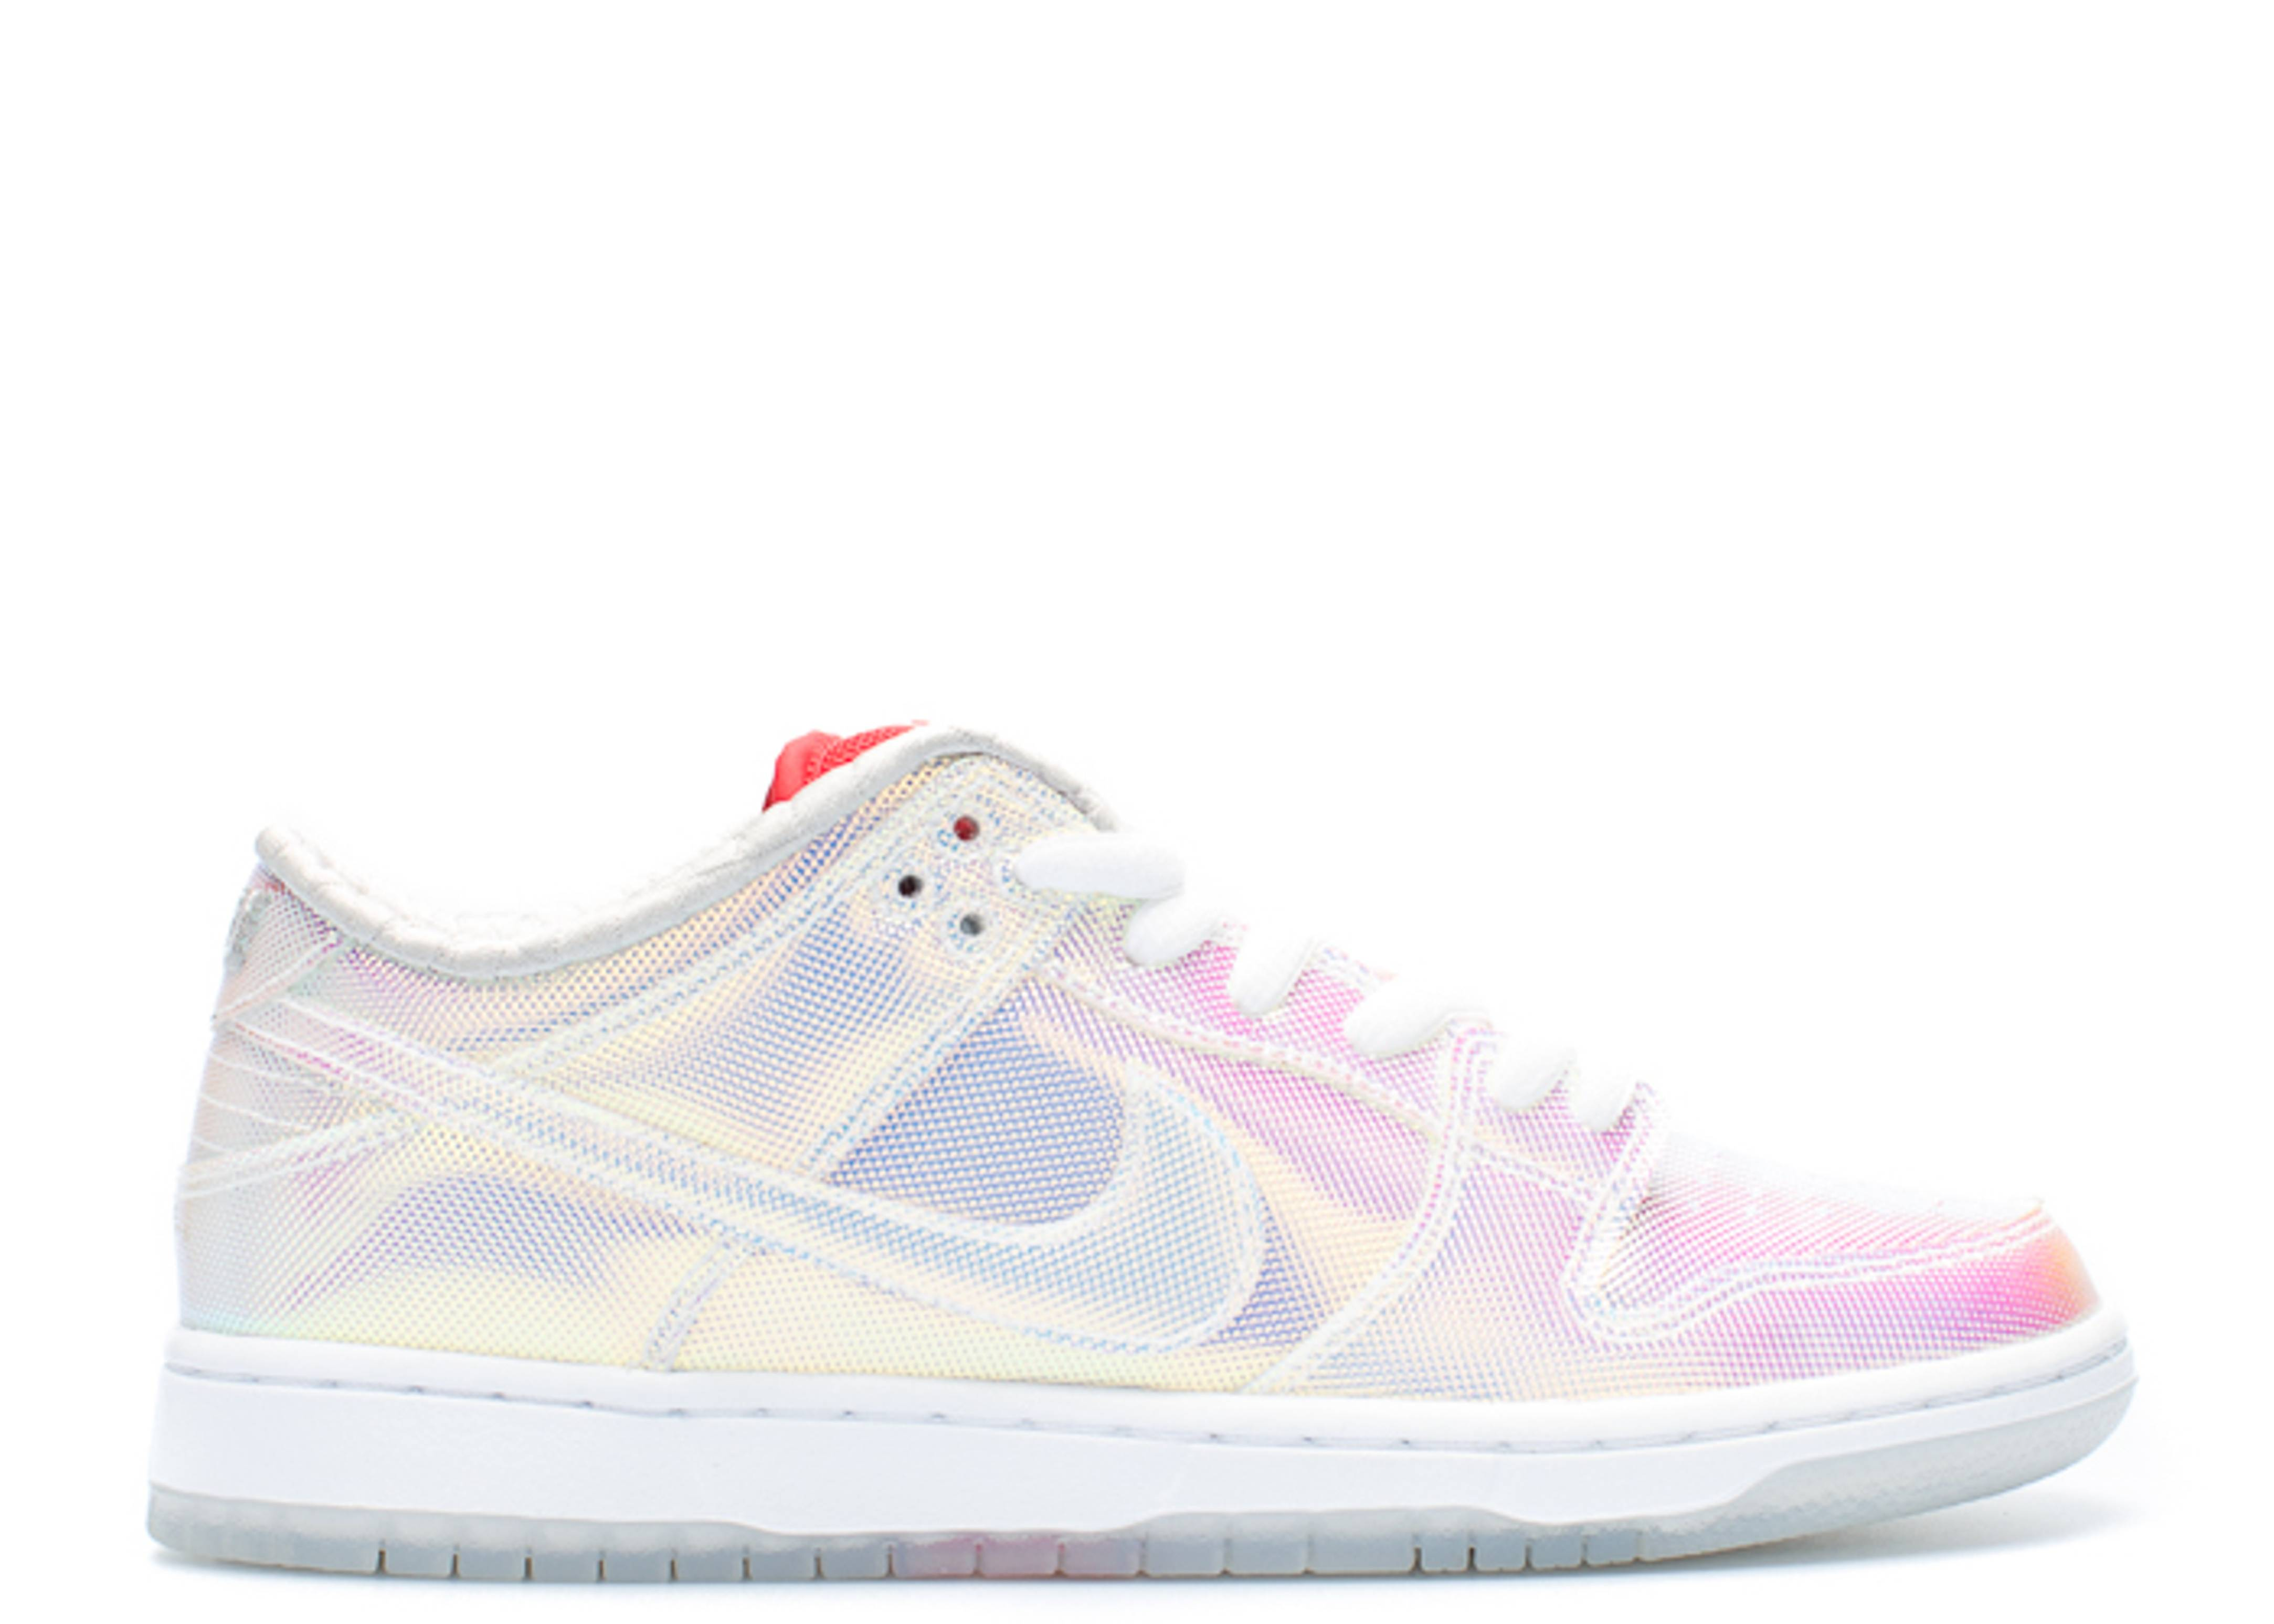 cf0908029992 Concepts Nike Sb Dunk Low